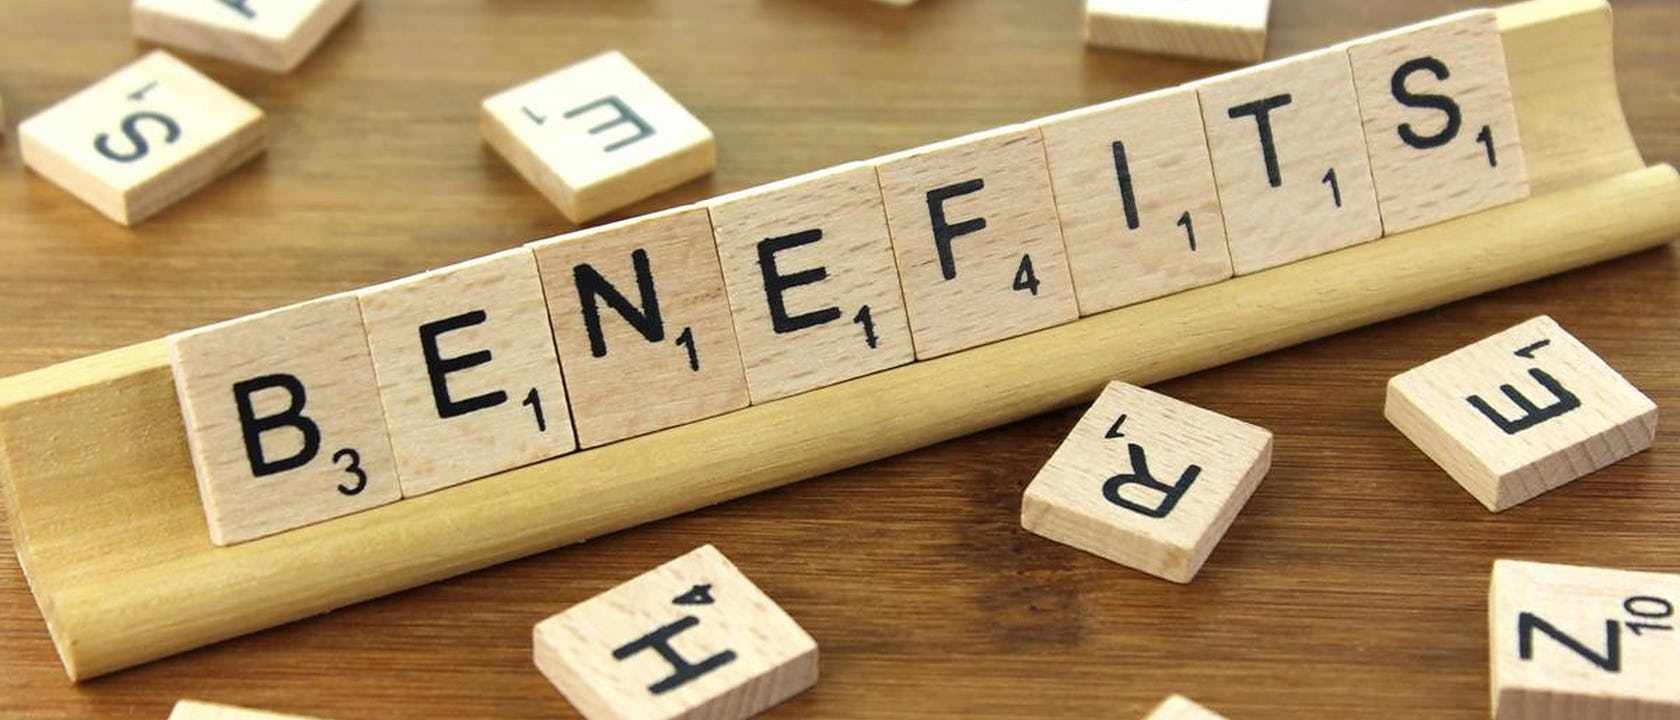 Employee benefits: what's it all about?